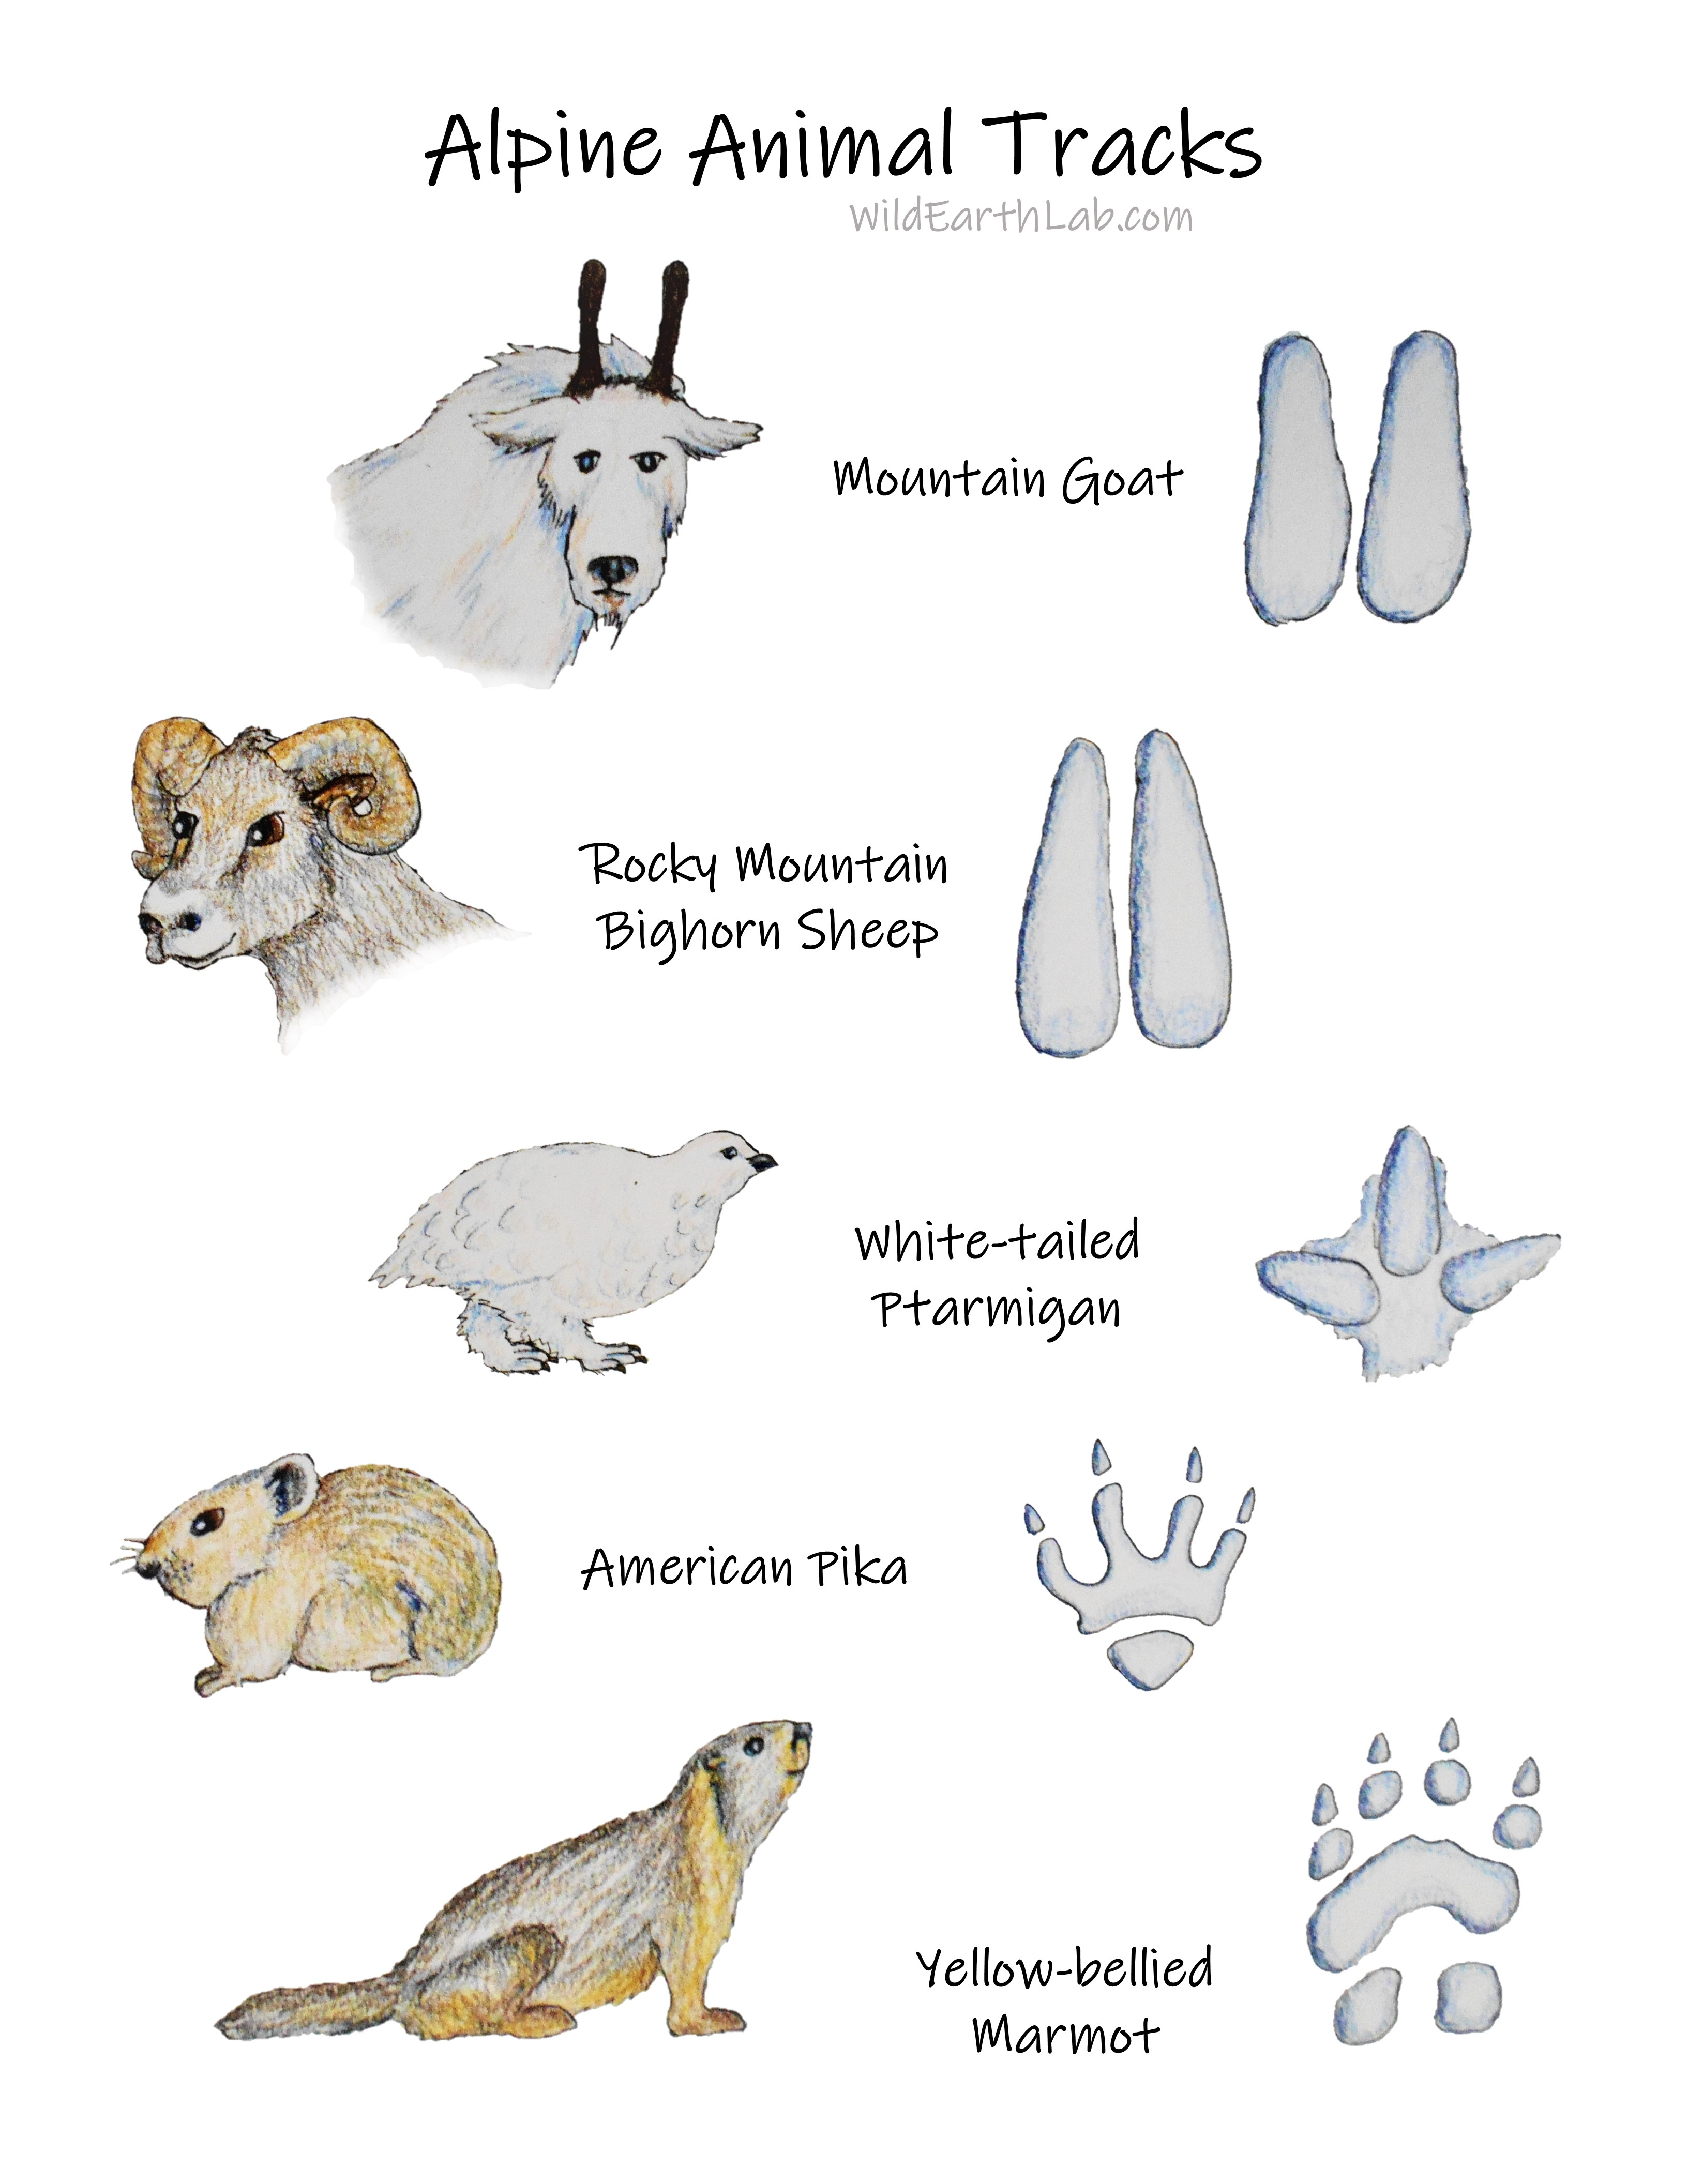 Nature learning poster with original sketches of alpine animals and their tracks. Mountain goat, Rocky Mountain bighorn sheep, white-tailed ptarmigan, American pika, and yellow-bellied marmot.